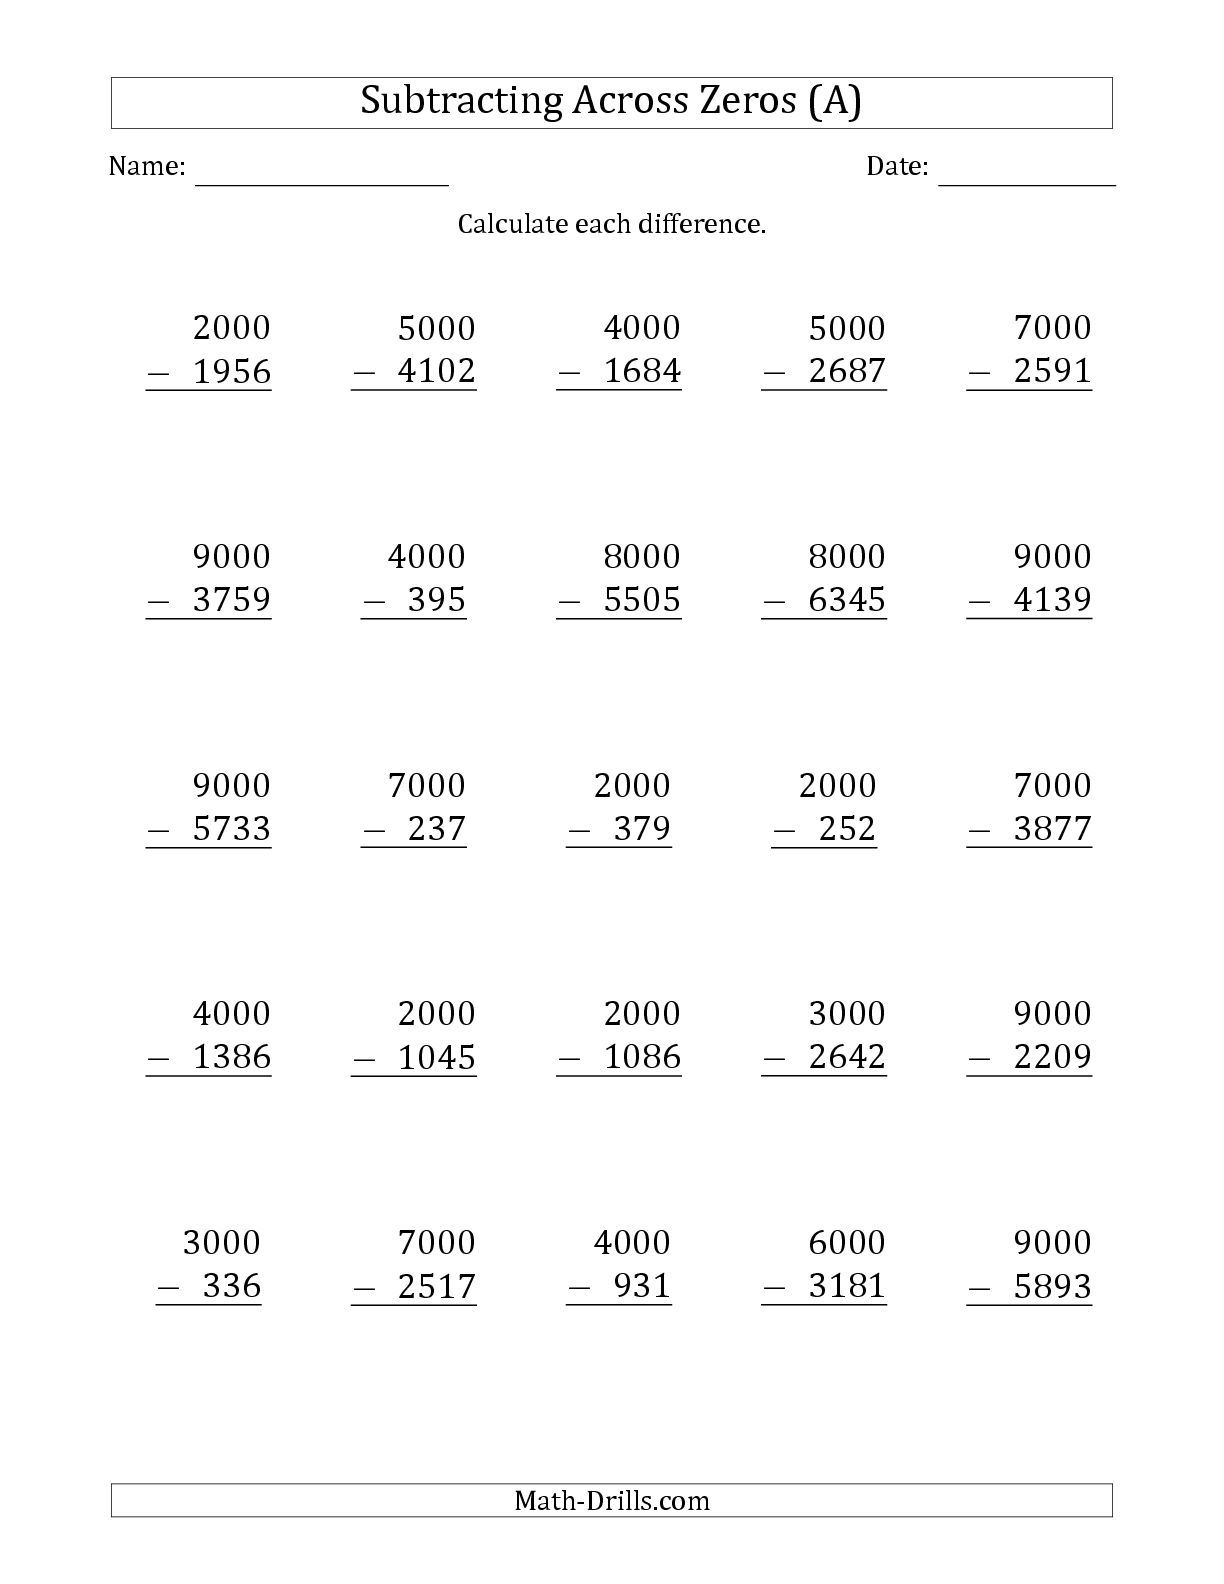 The Subtracting Across Zeros From Multiples Of 1000 A Math Worksheet From The Subtraction W Subtraction Across Zeros Addition Worksheets Math Fact Worksheets